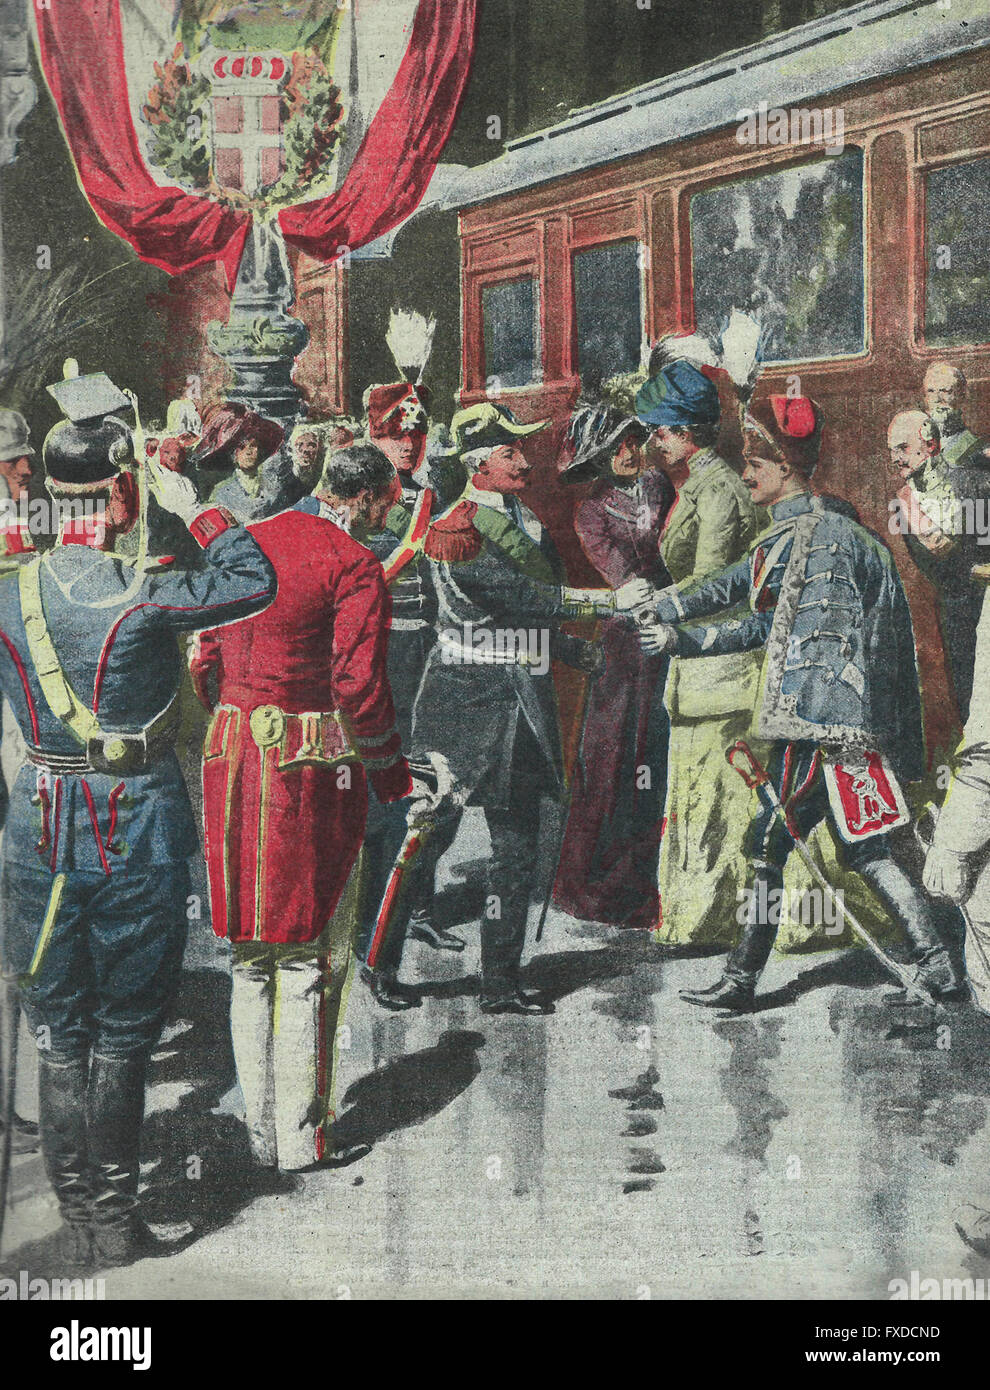 The Kings of Italy in Kiel : the meeting of our Sovereign with the German imperialists in the Baltic Spezia station - Stock Image